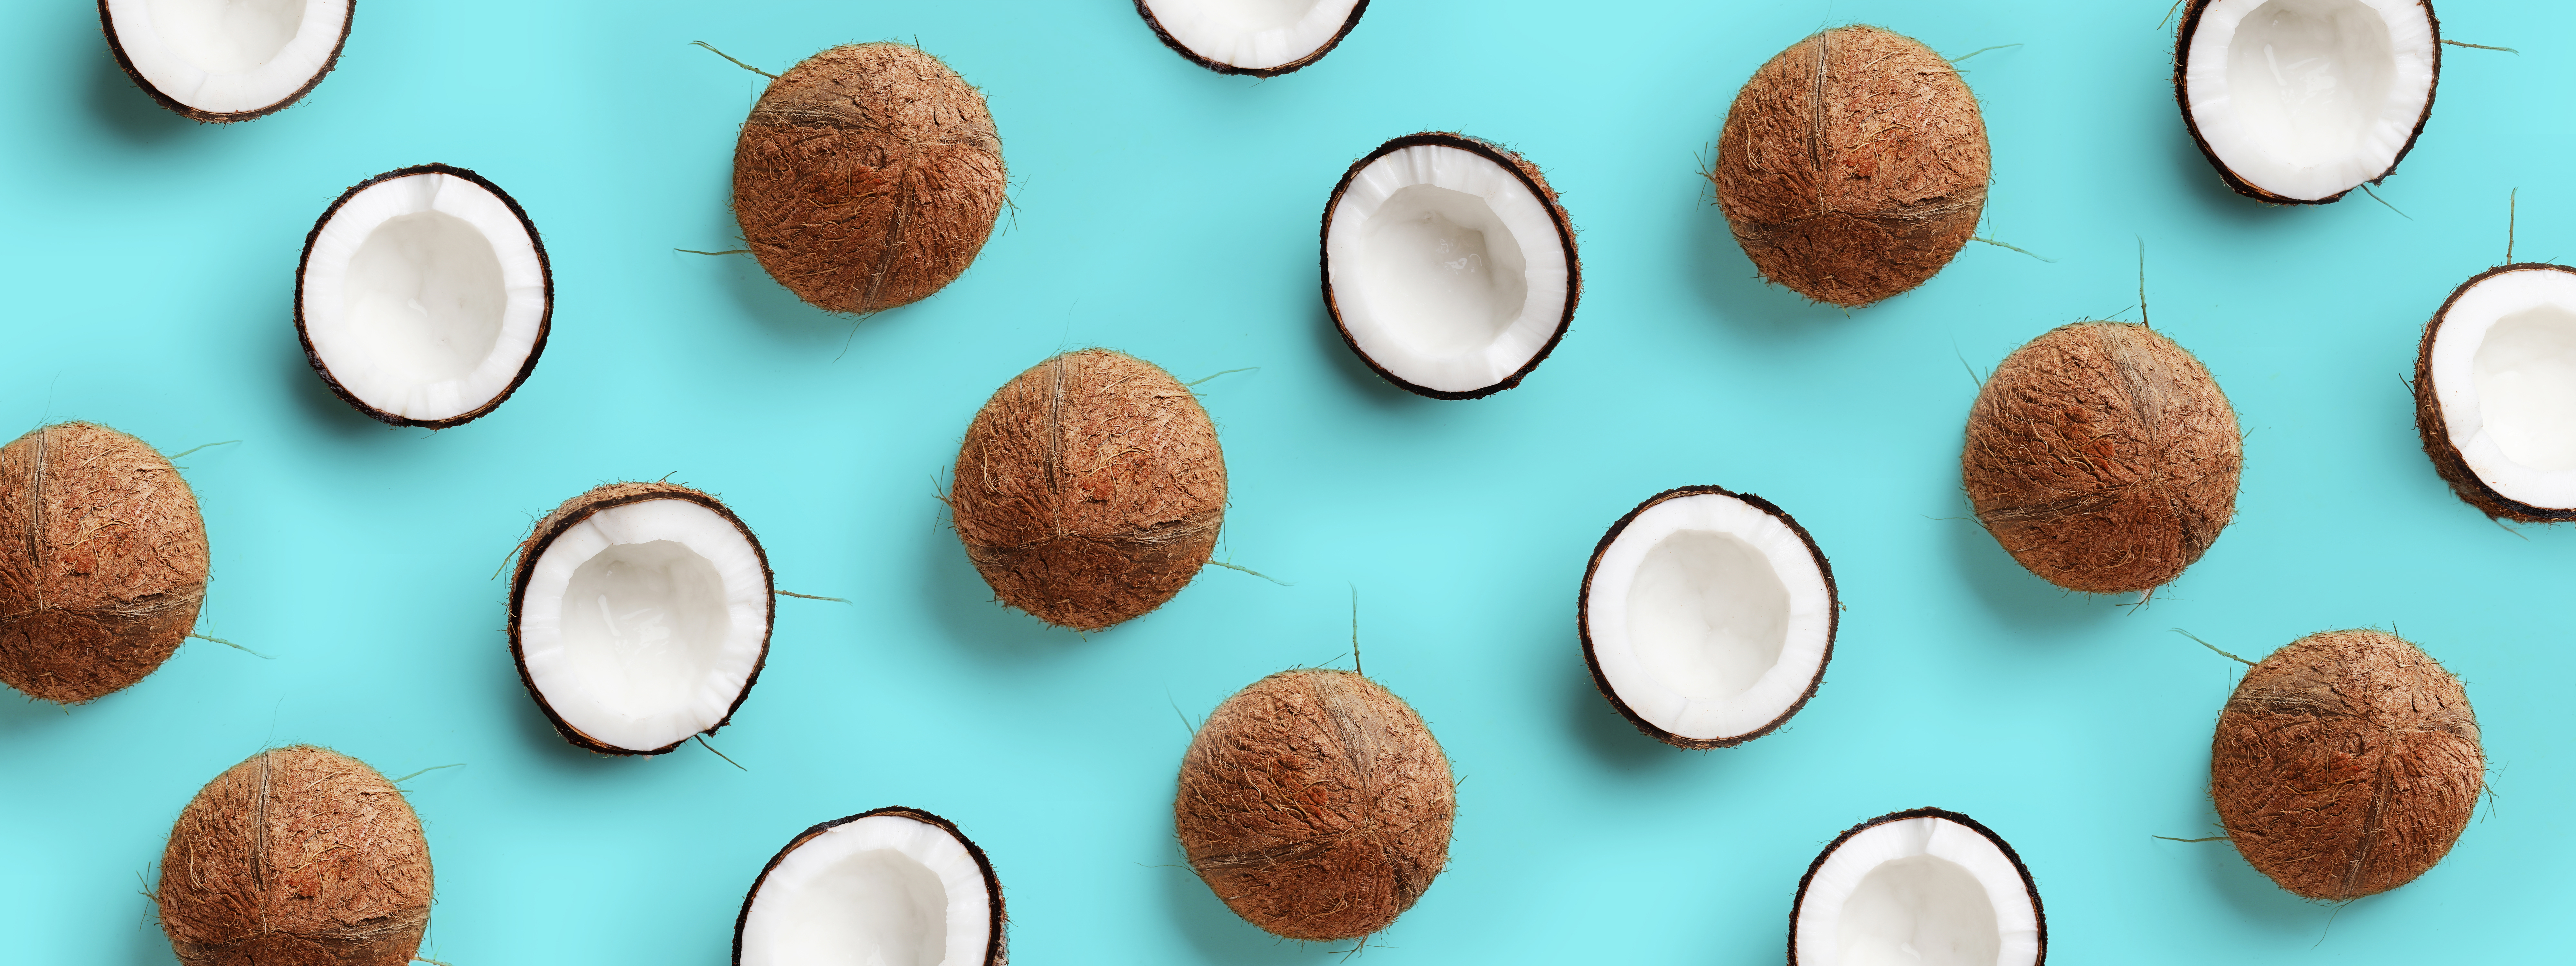 Coconuts arranged in a pattern on a blue background.